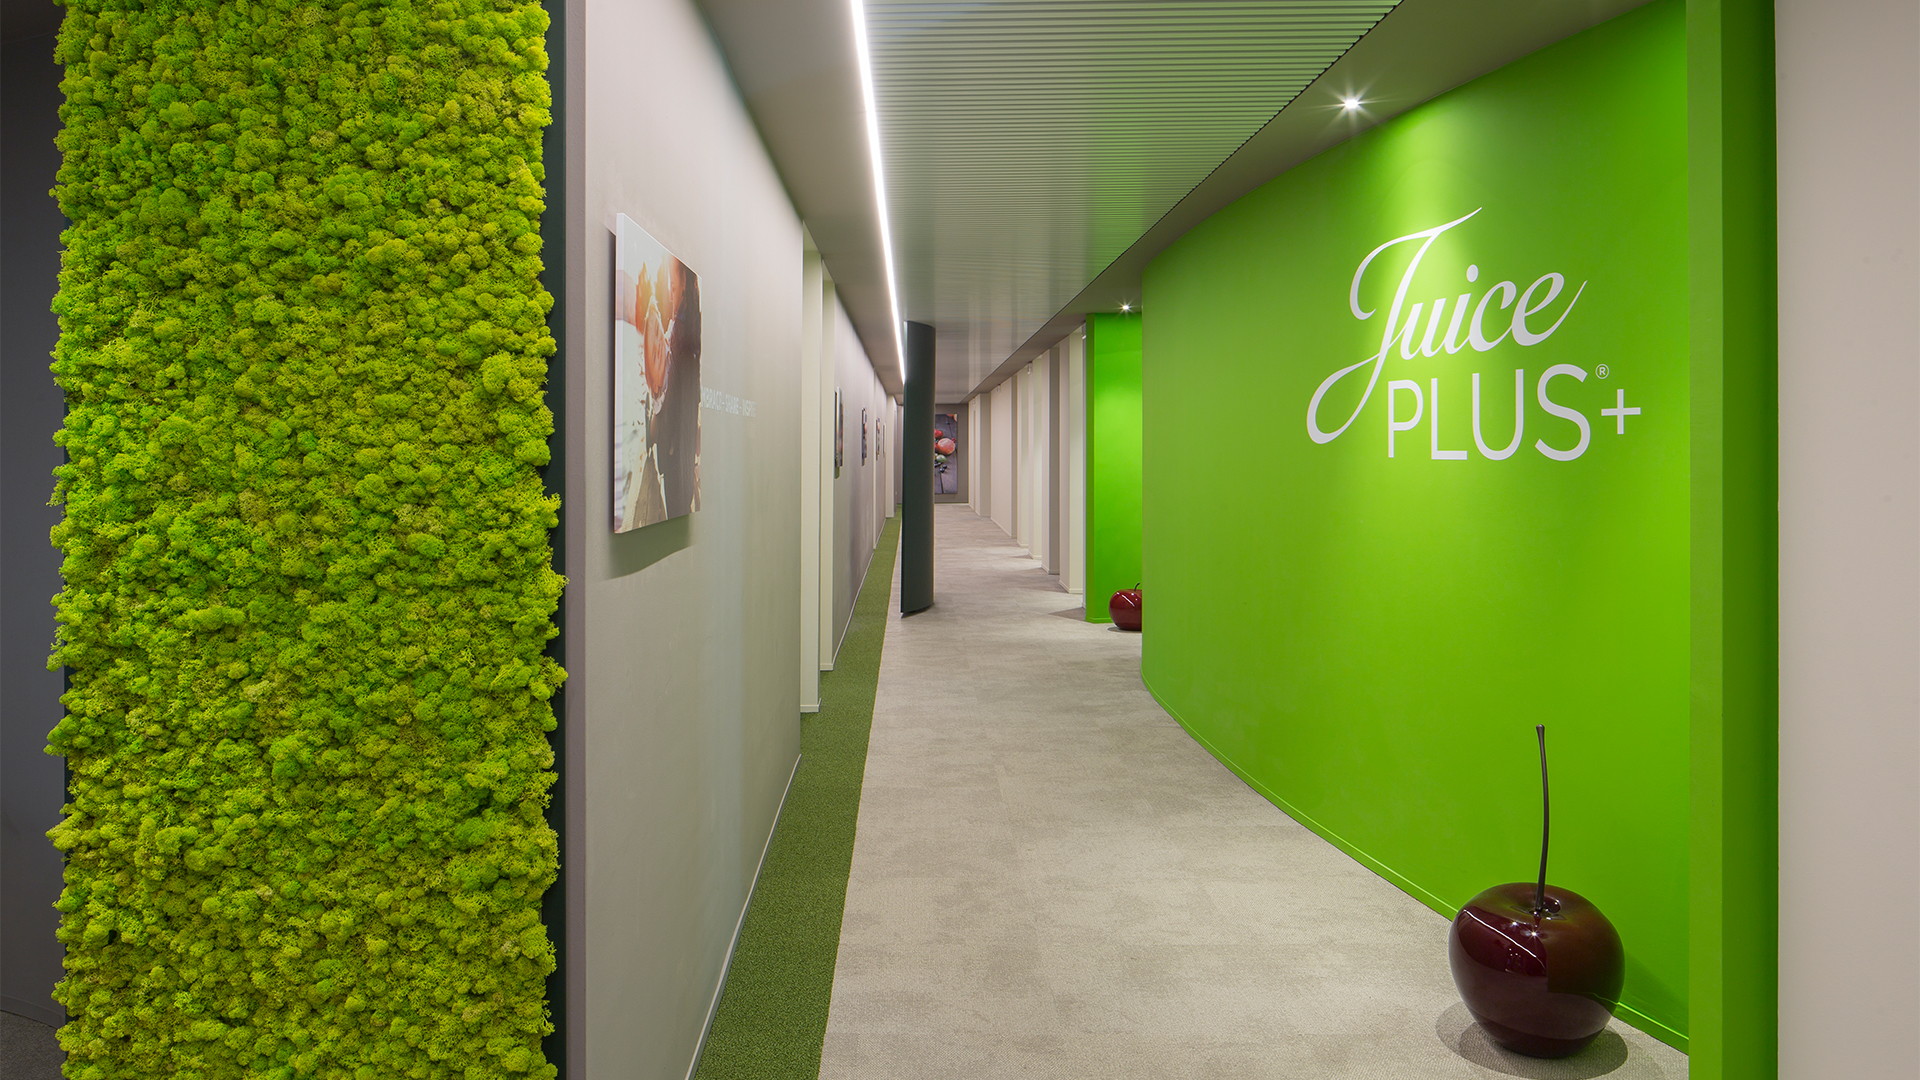 juice-plus-level-office-landscape